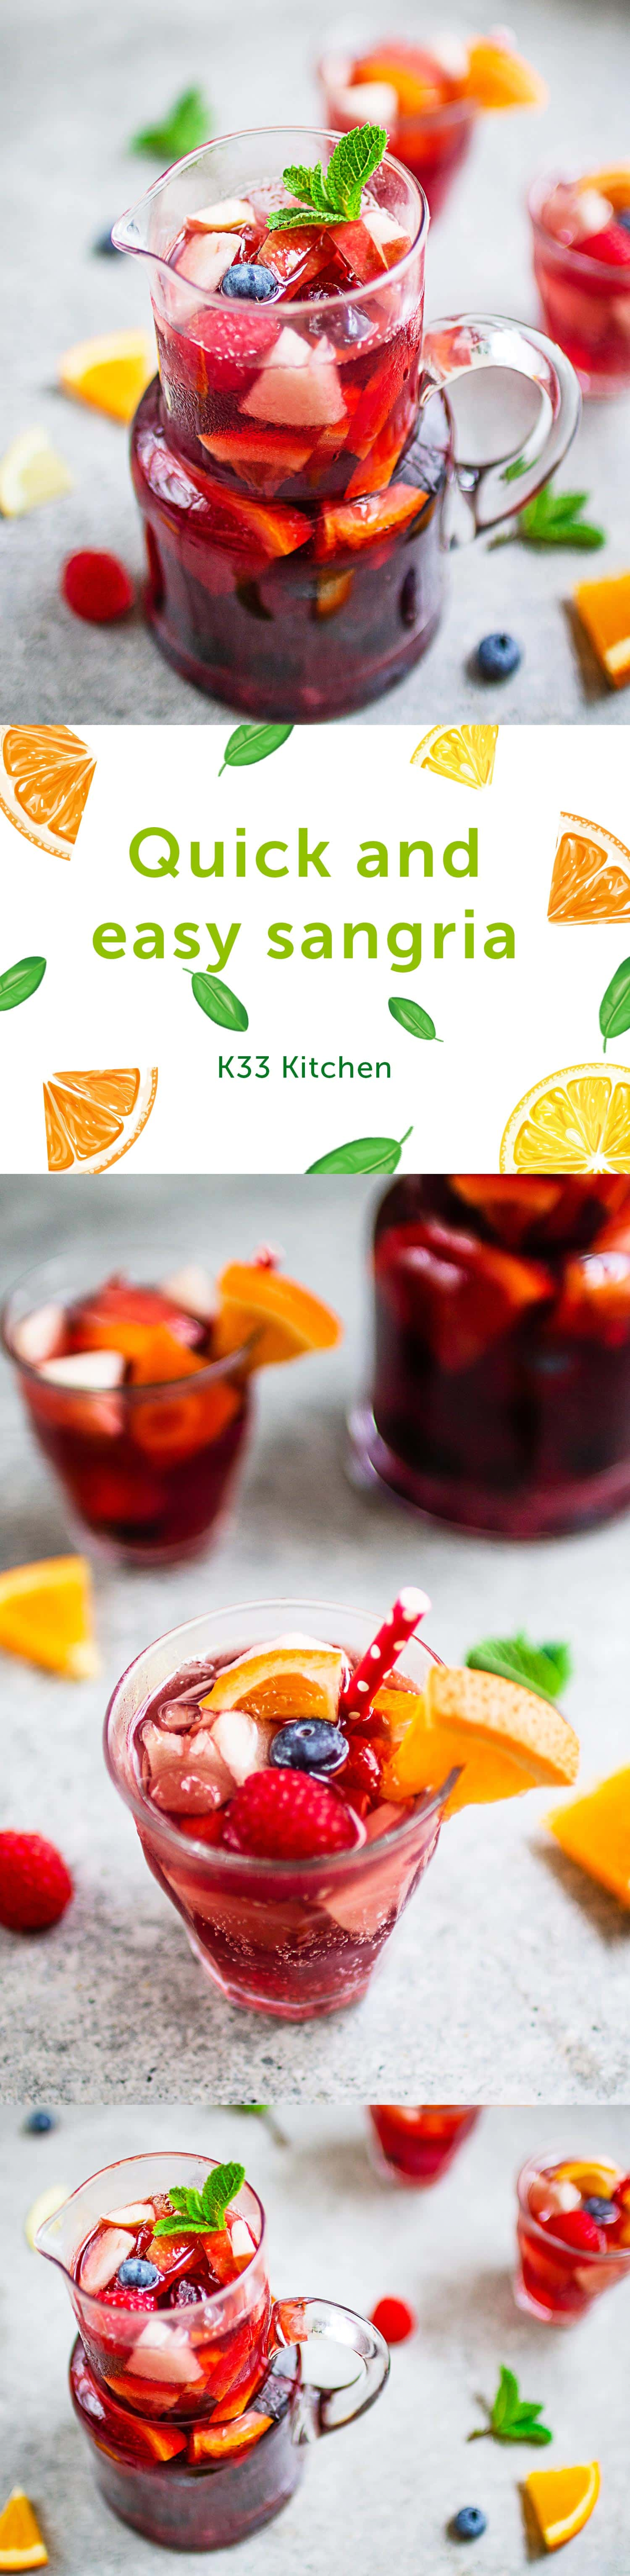 Quick and easy sangria